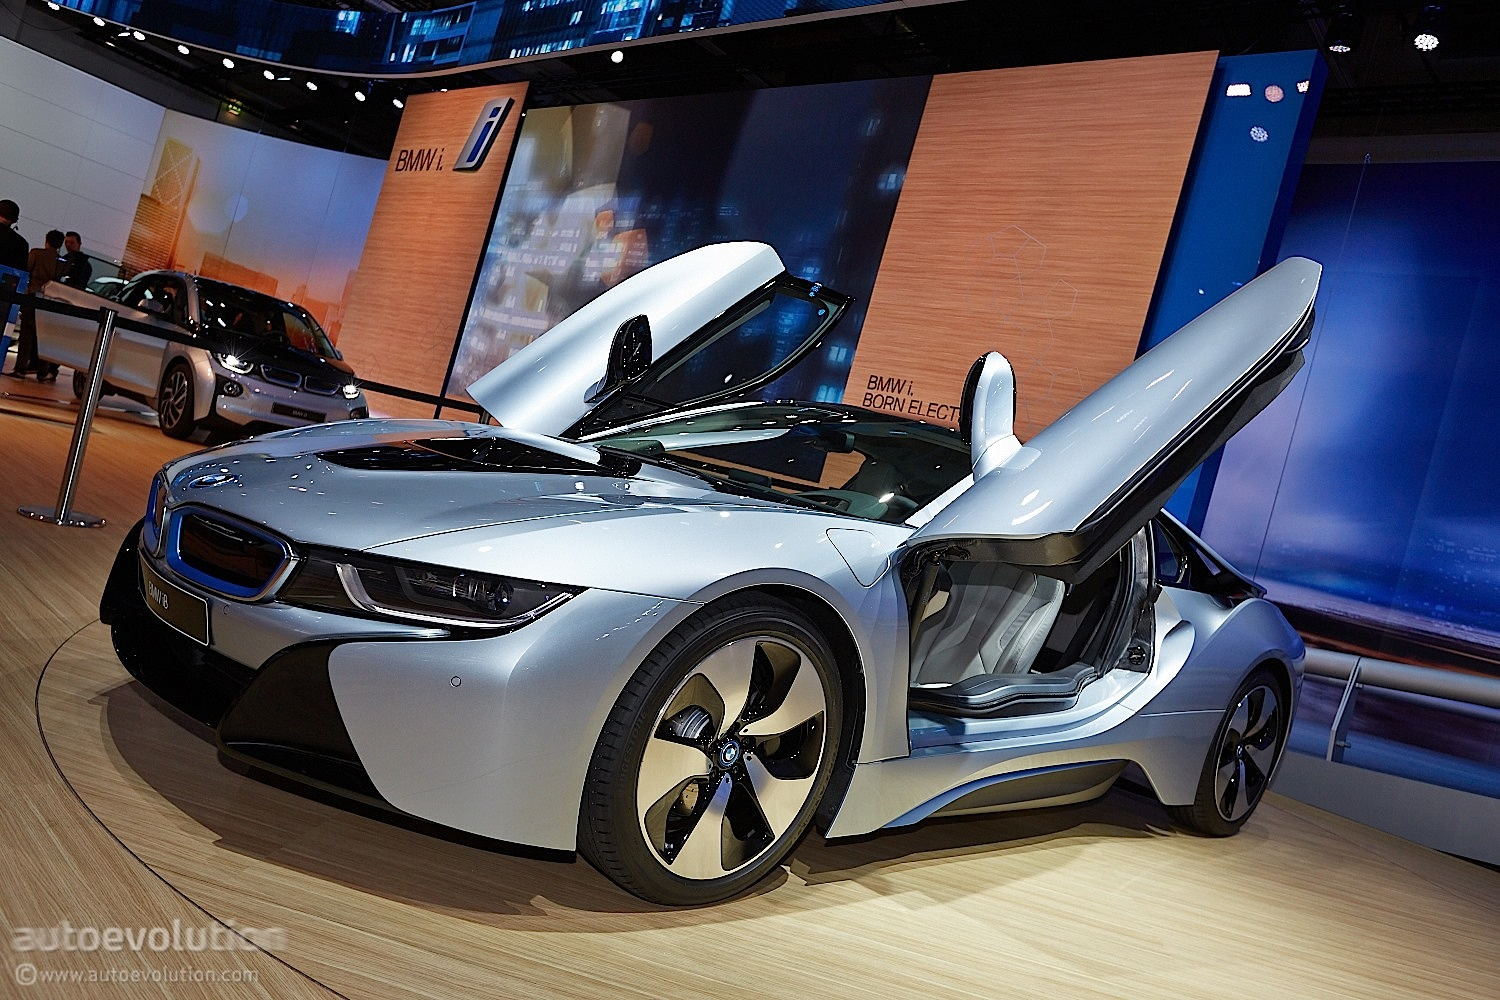 frankfurt bmw i8. Black Bedroom Furniture Sets. Home Design Ideas